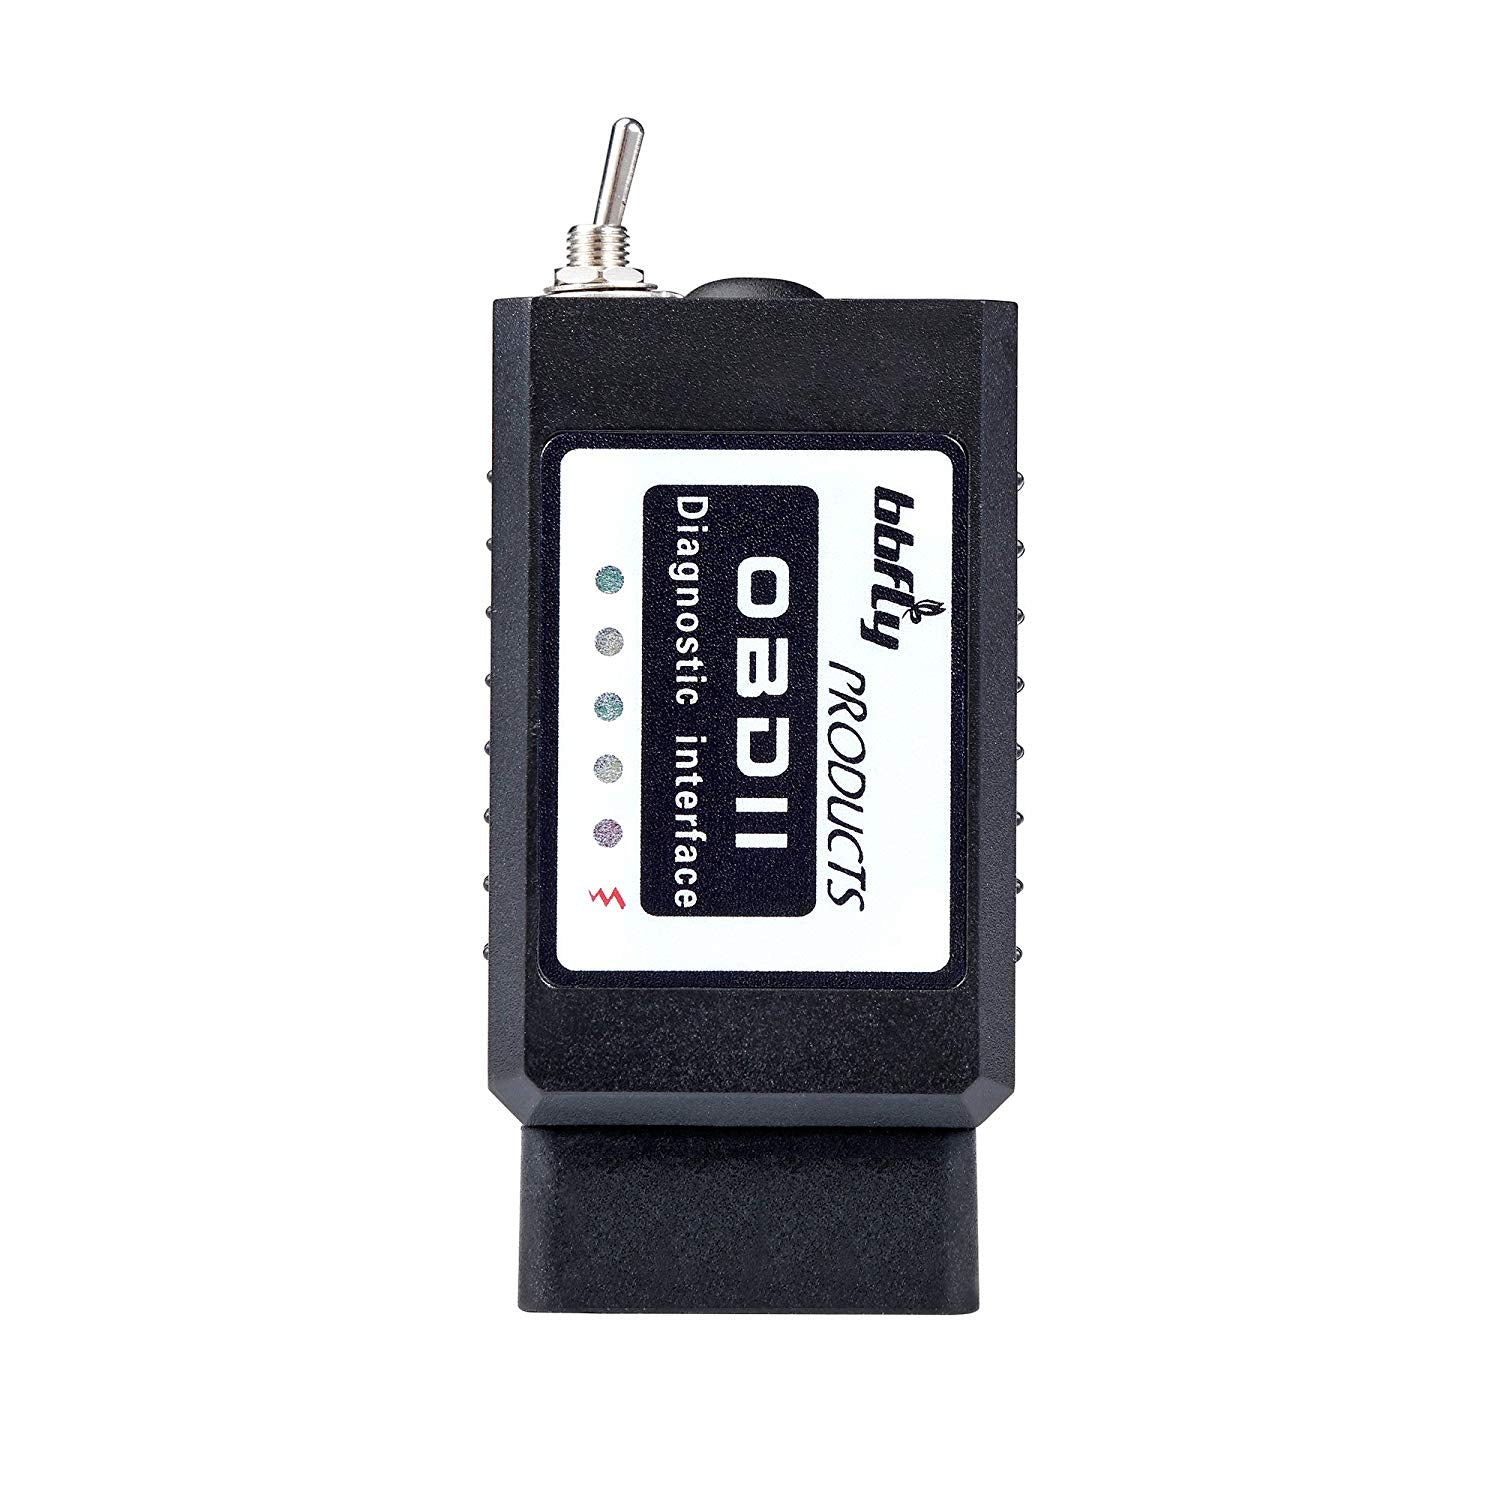 bbfly-BB77102 Bluetooth modified Android OBD Scan Tool FORScan